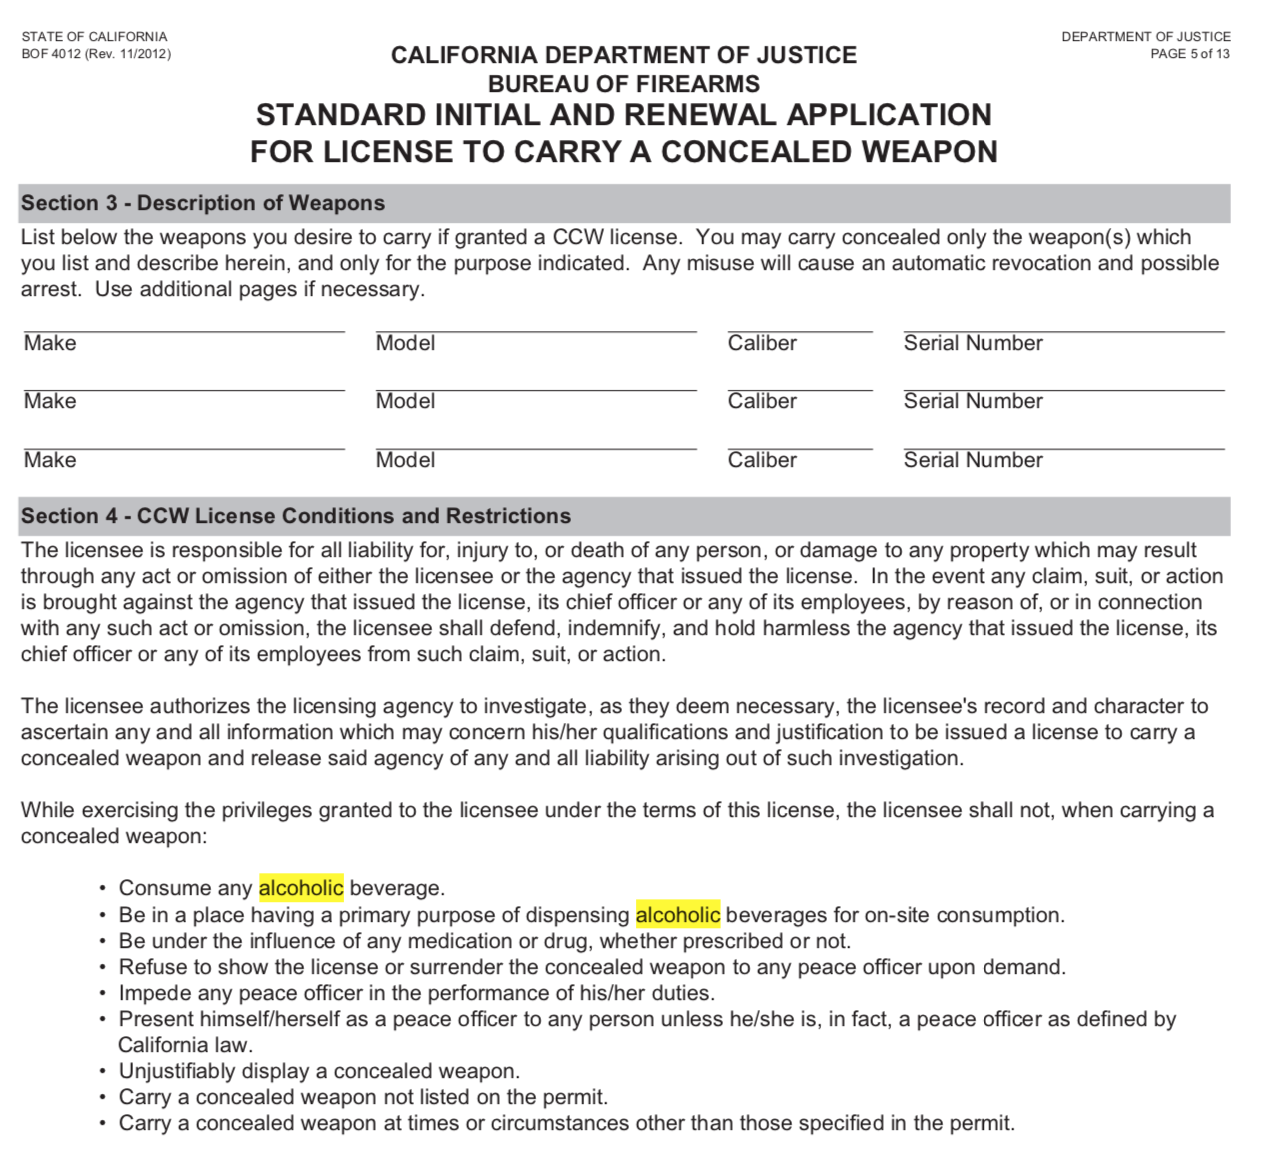 California concealed handgun permit application - Crime ... on ninja weapons, ccw weapons, dangerous weapons, green weapons, all weapons, unconcealed weapons, cold weapons, covert weapons, hidden weapons, disguised weapons, guns weapons, red weapons, compact weapons, black weapons, hiding weapons, homemade weapons, cool weapons, zombie weapons, concealing weapons, tactical weapons,